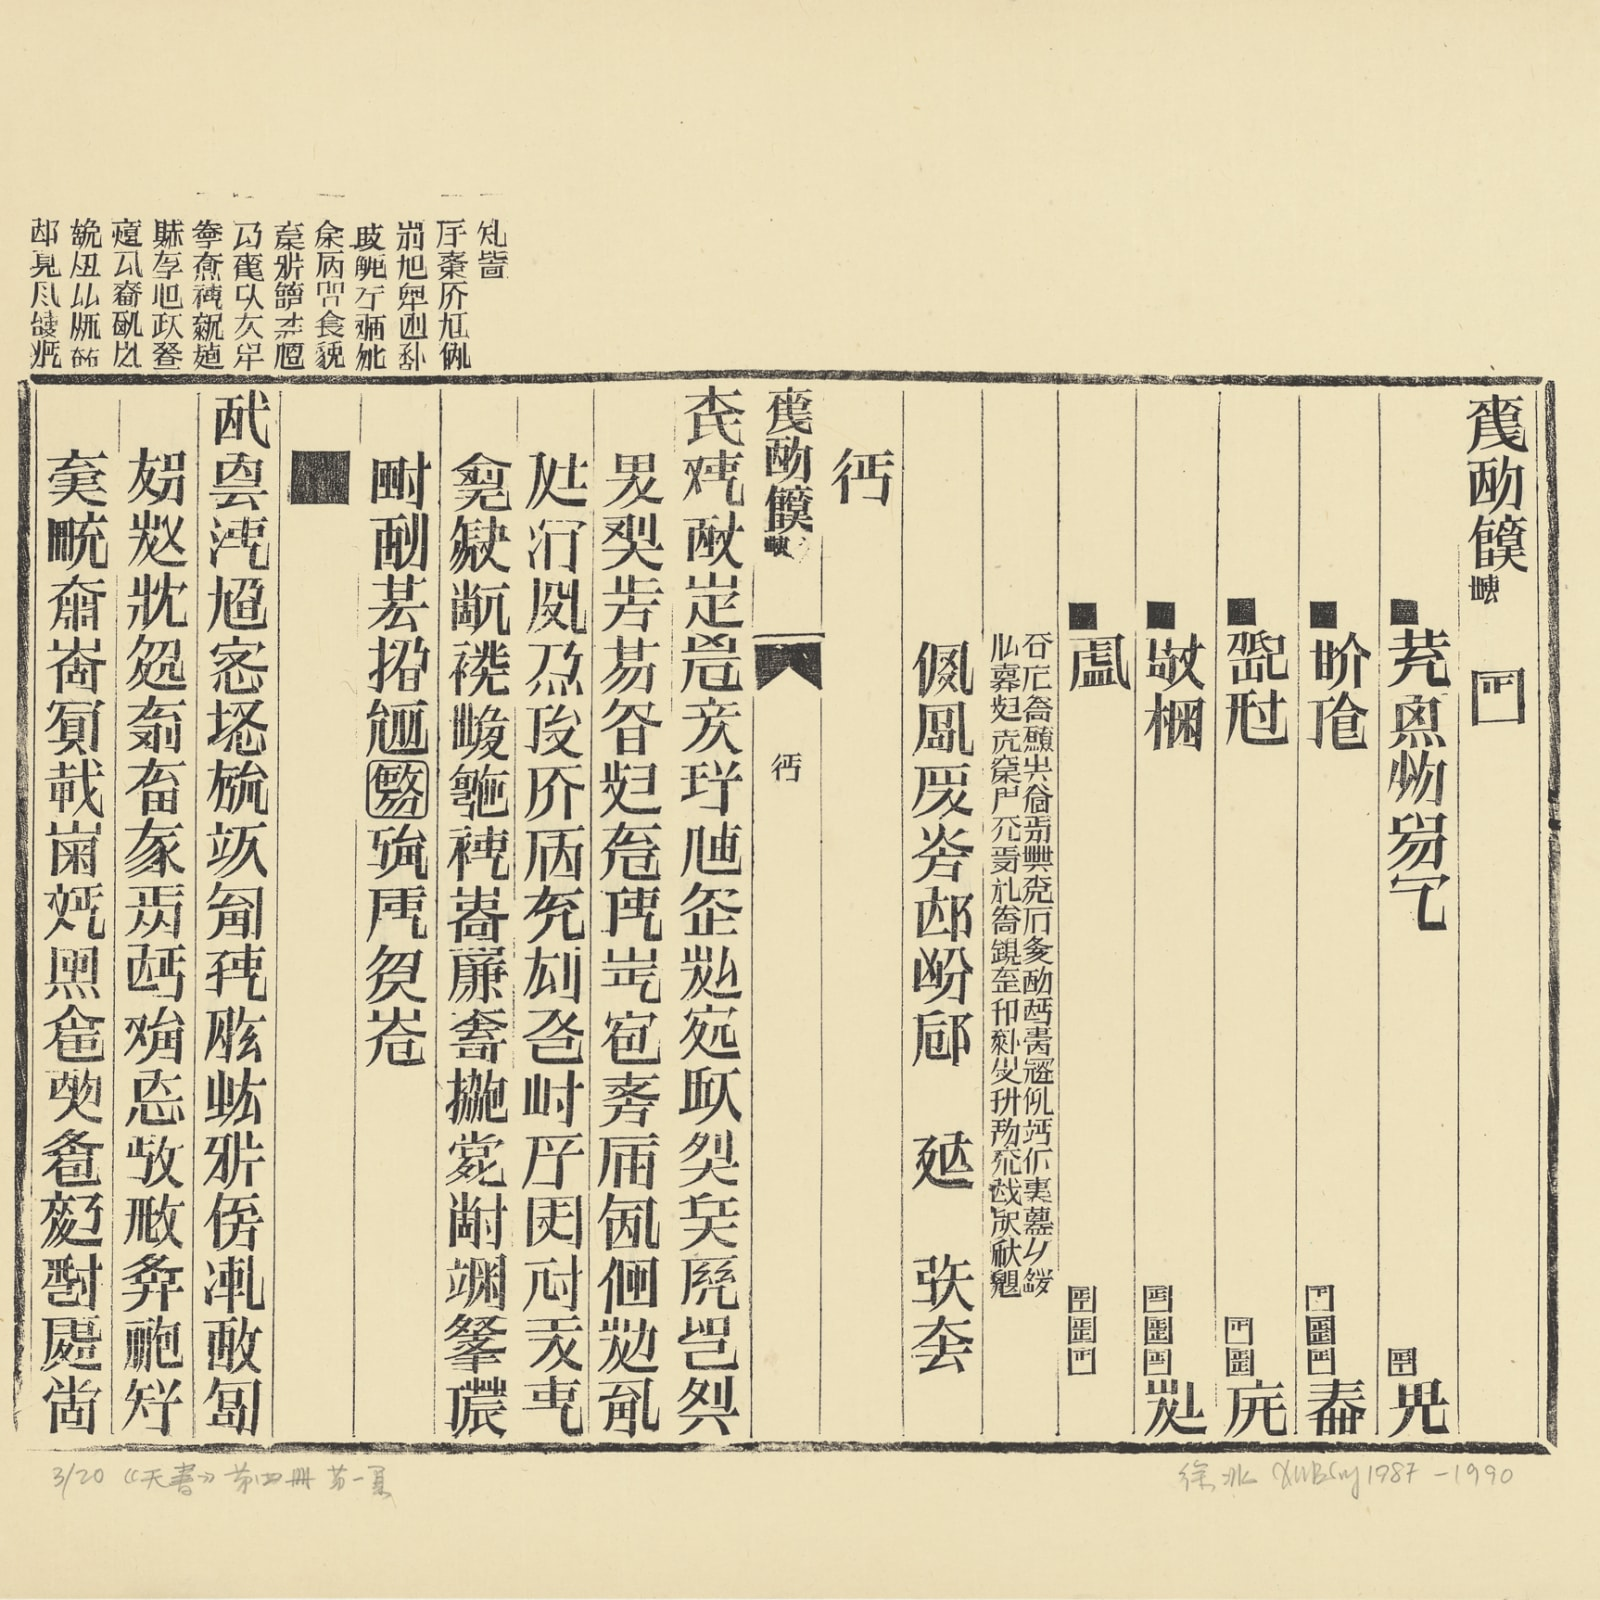 Xu Bing 徐冰, Book from the Sky, Volume 4, Page 1 《天书》第四册第一页, 1987-90